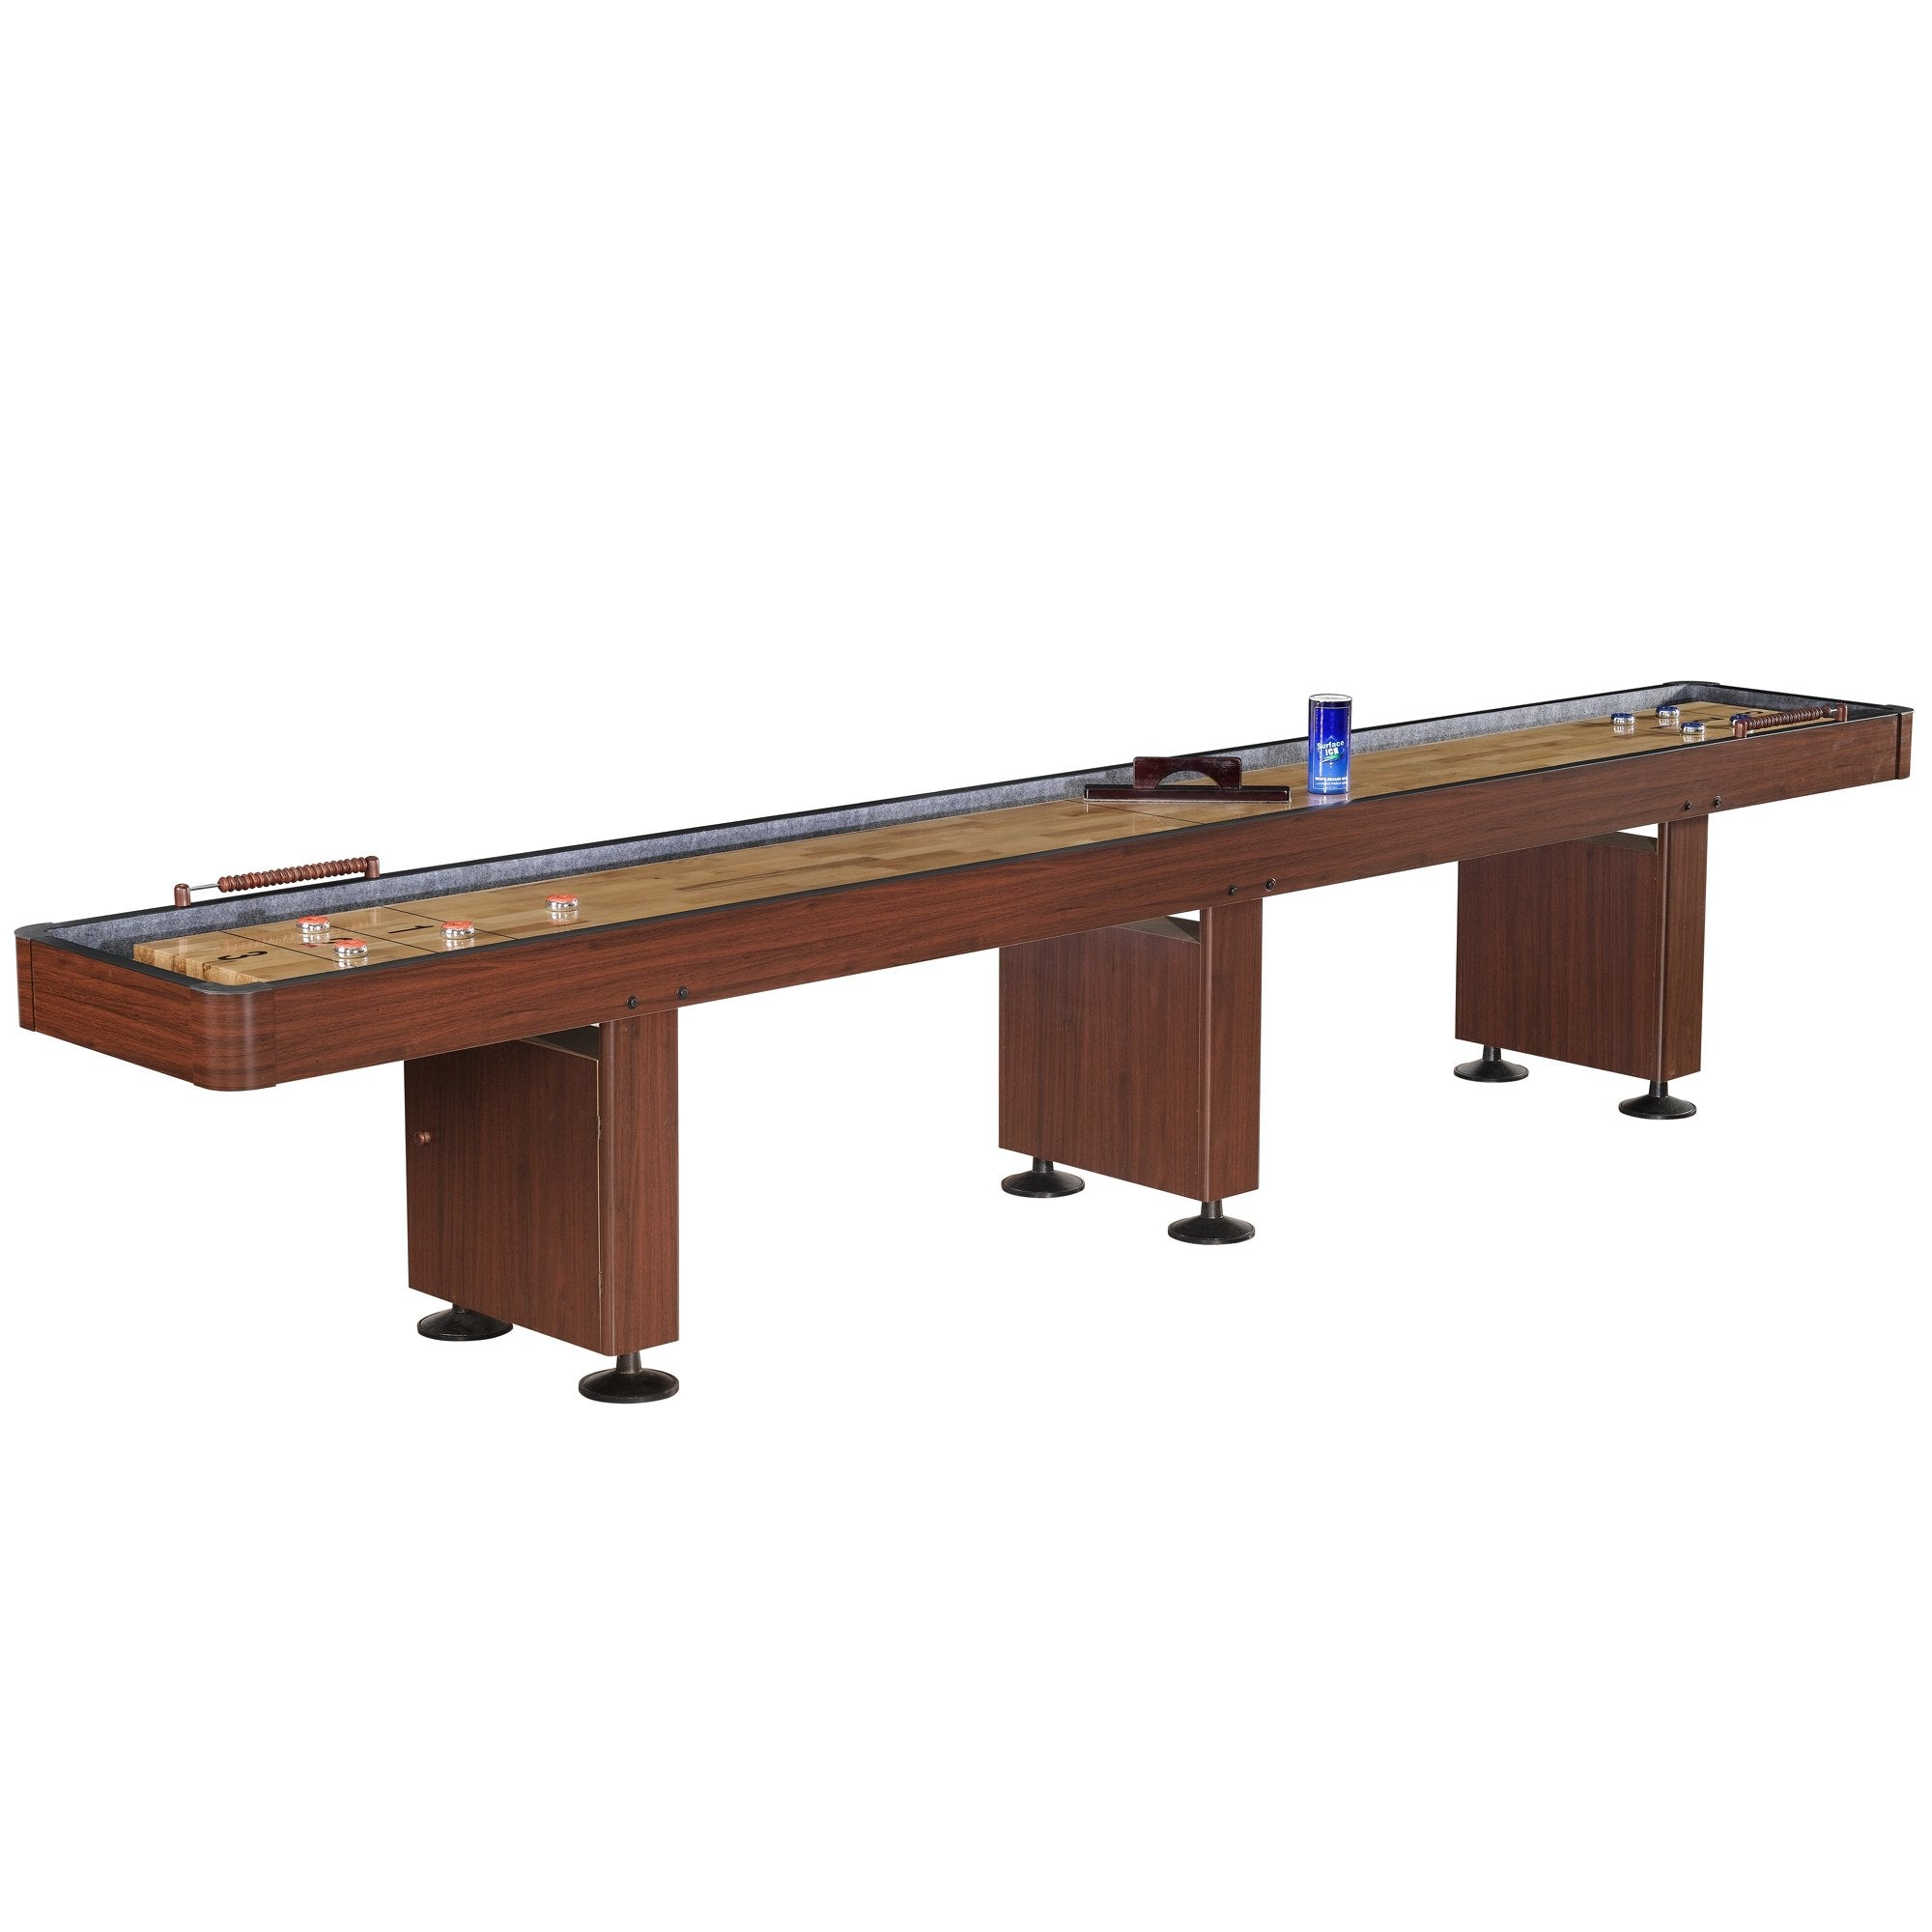 Hathaway Challenger Dark Cherry 14ft Shuffleboard Table - Gaming Blaze